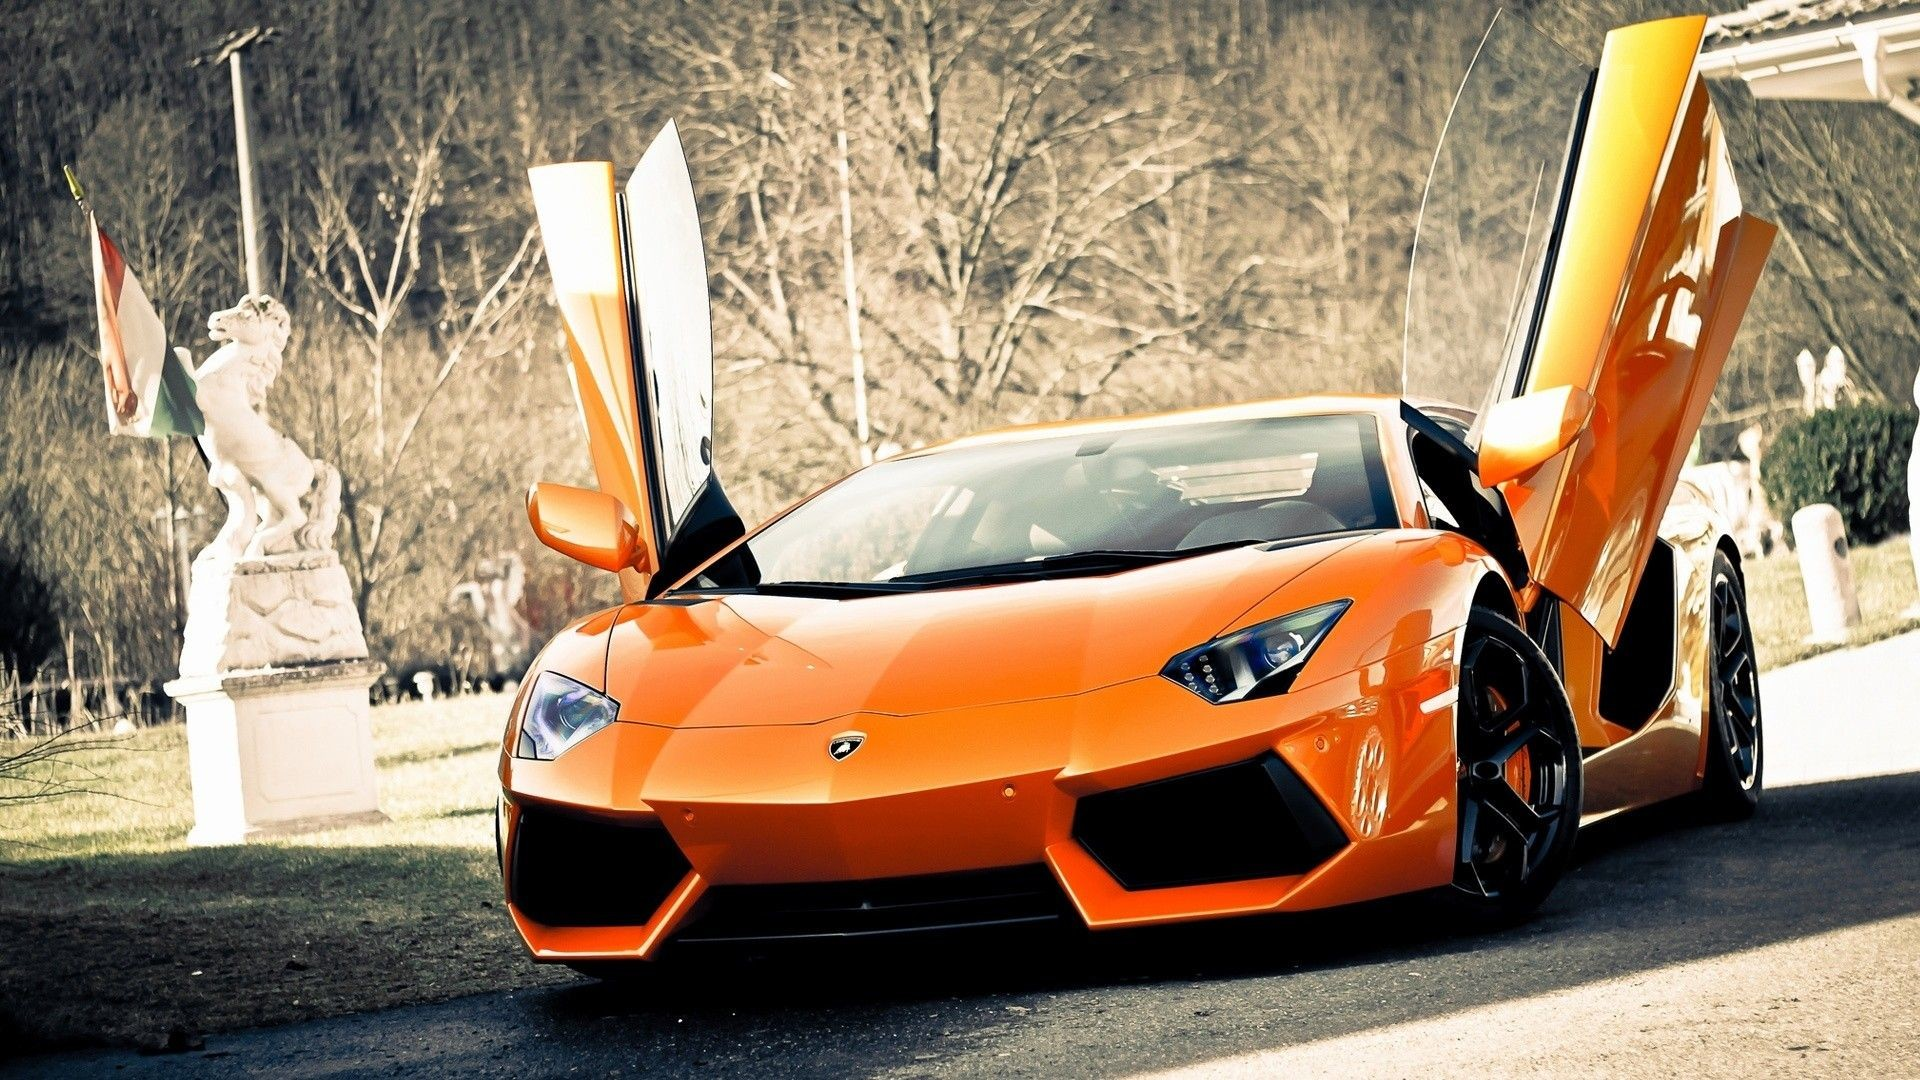 1920x1080 8 HD Sports Car Wallpapers : Find best latest 8 HD Sports Car Wallpapers in  HD